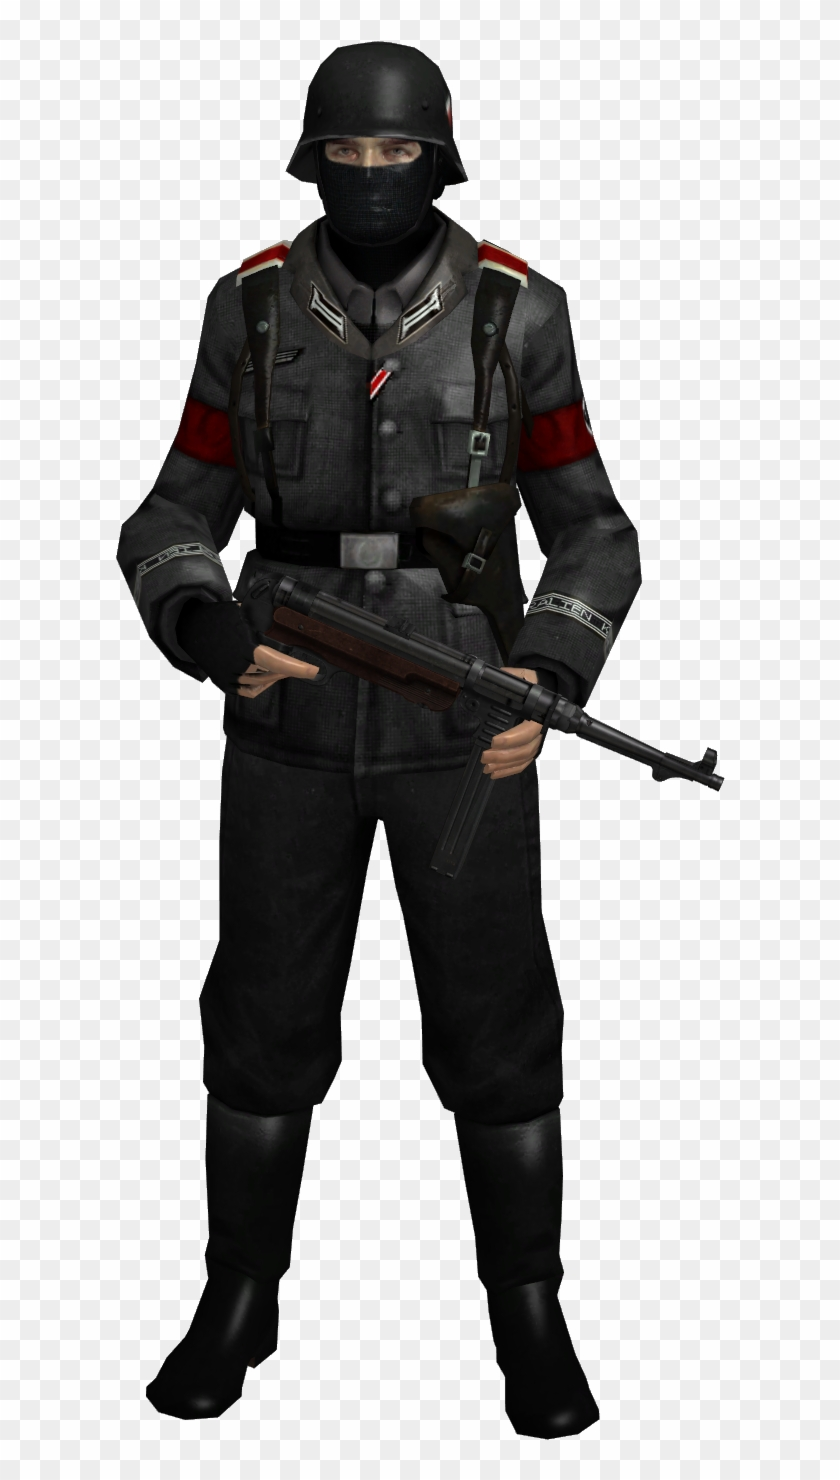 Ww2 Soldier Png, Transparent Png.